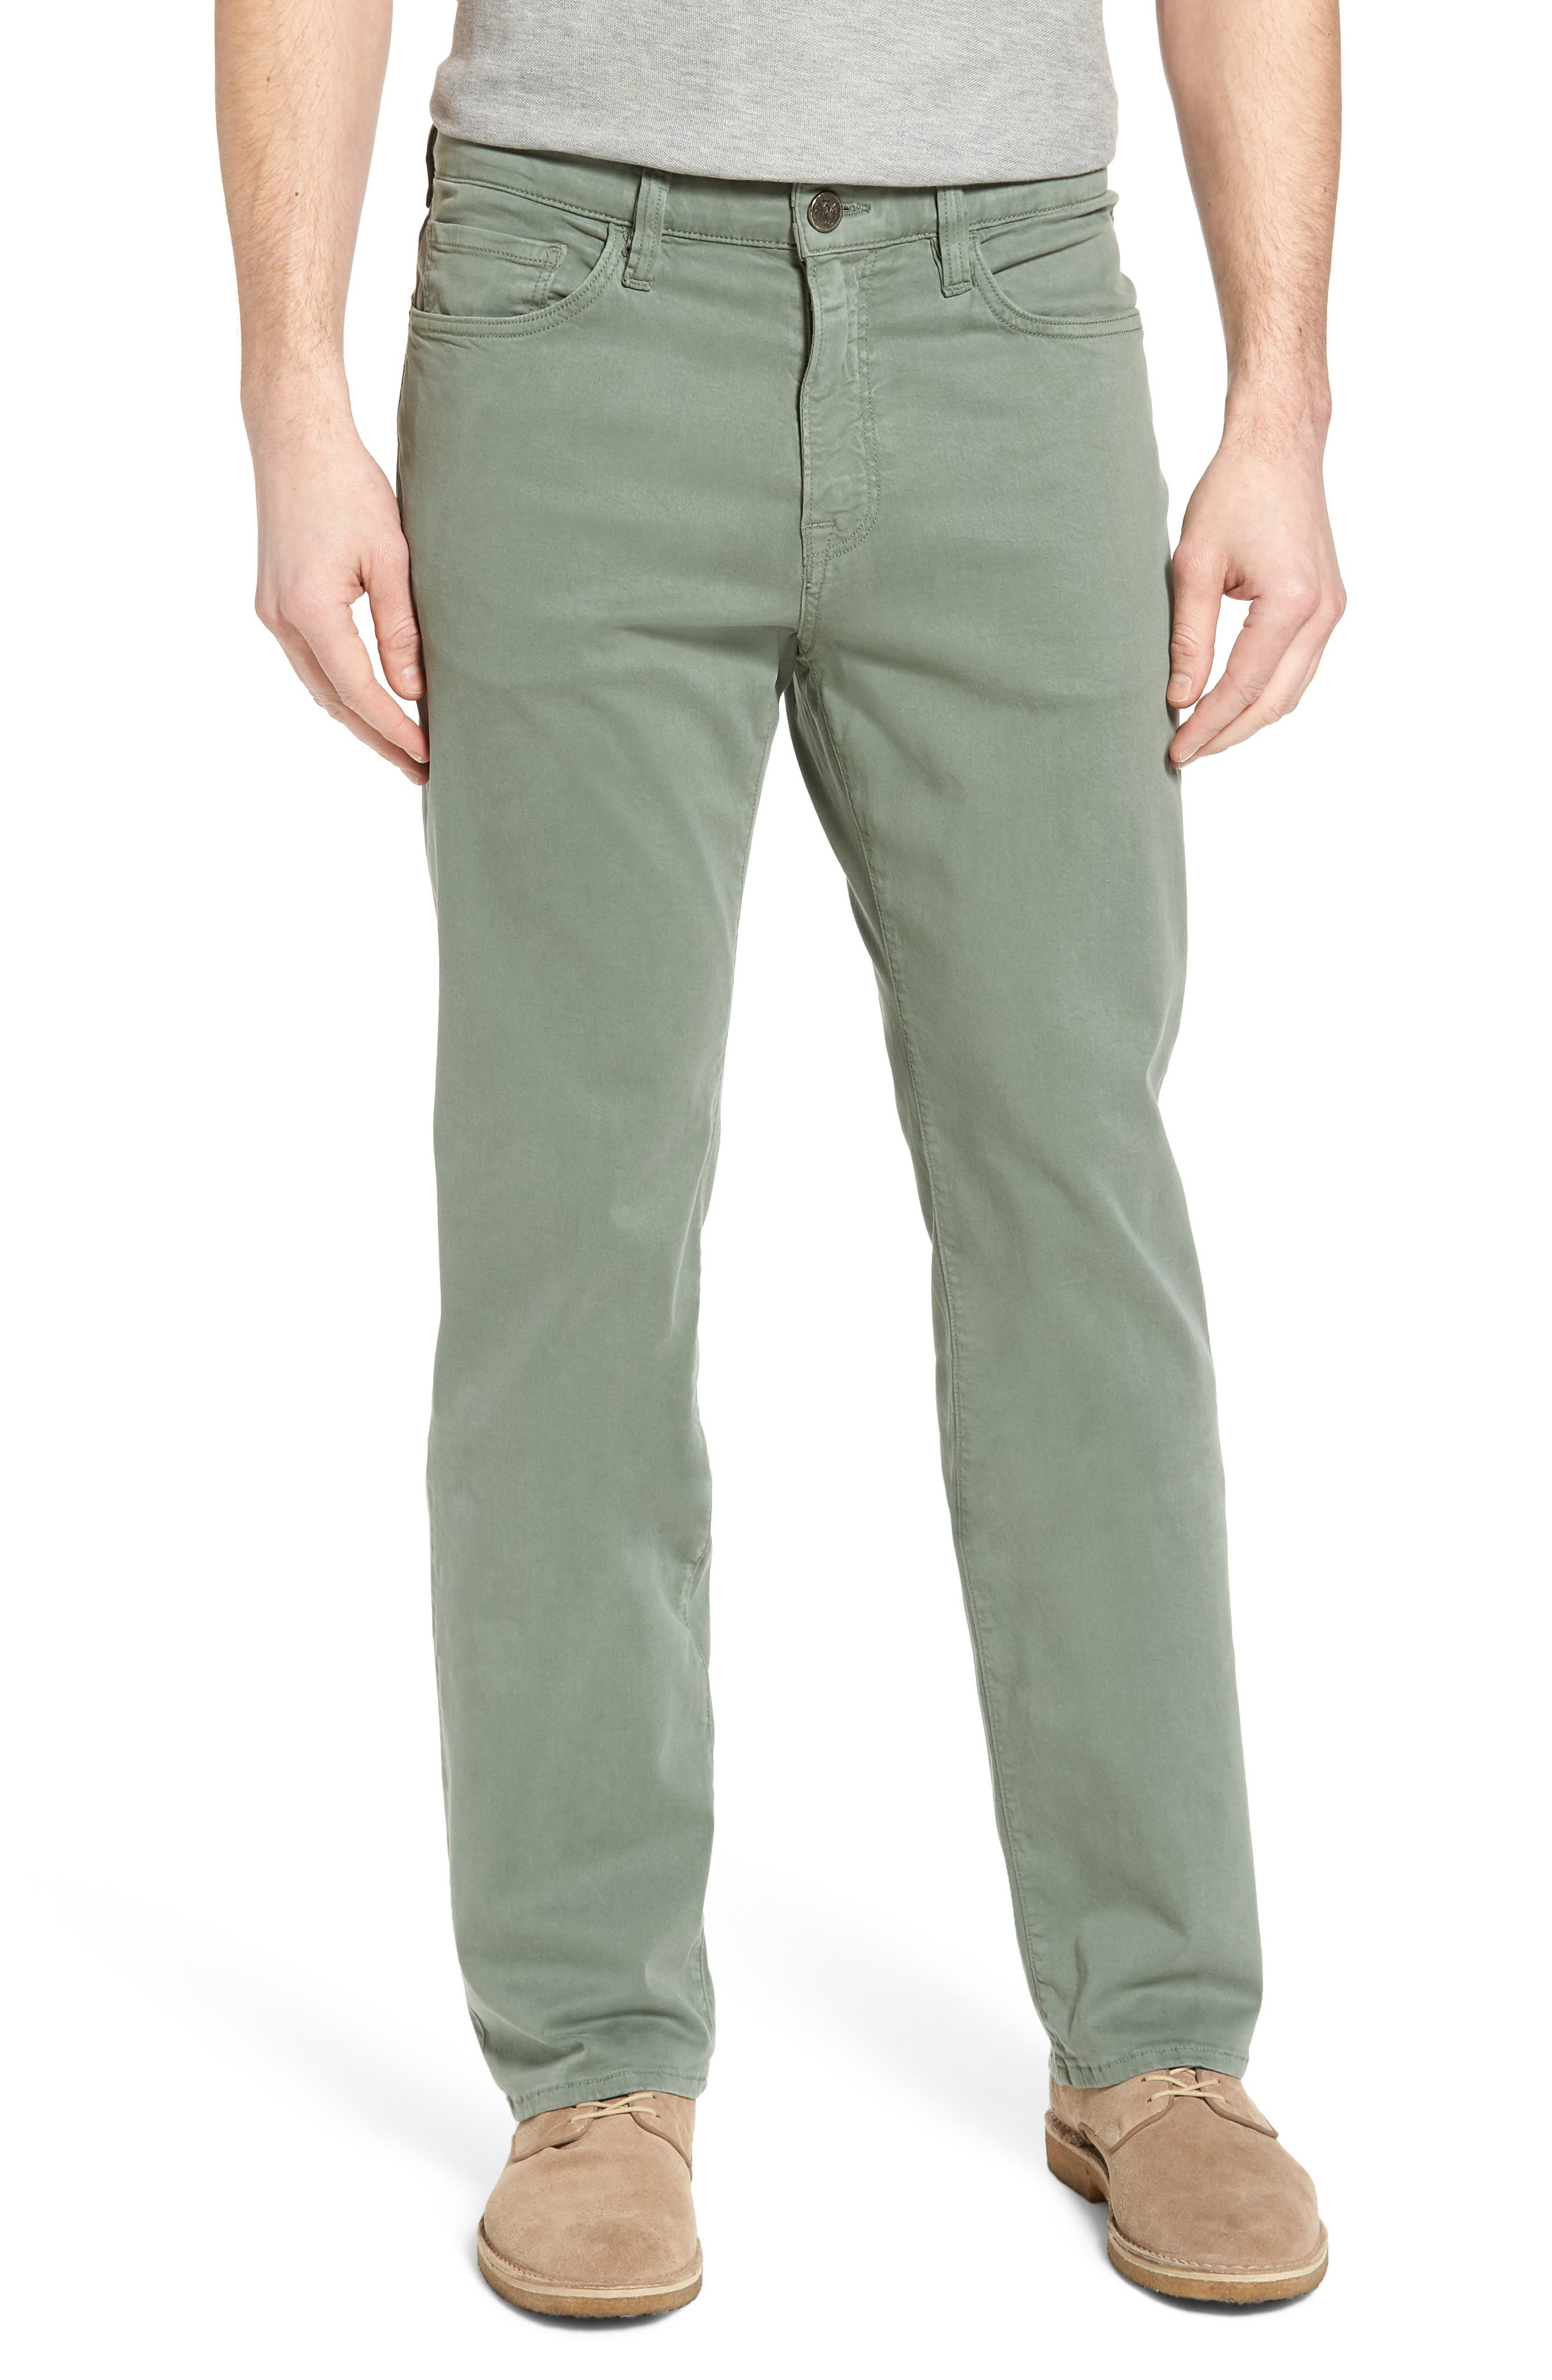 Charisma Relaxed Fit Twill Pants,                         Main,                         color, Moss Twill